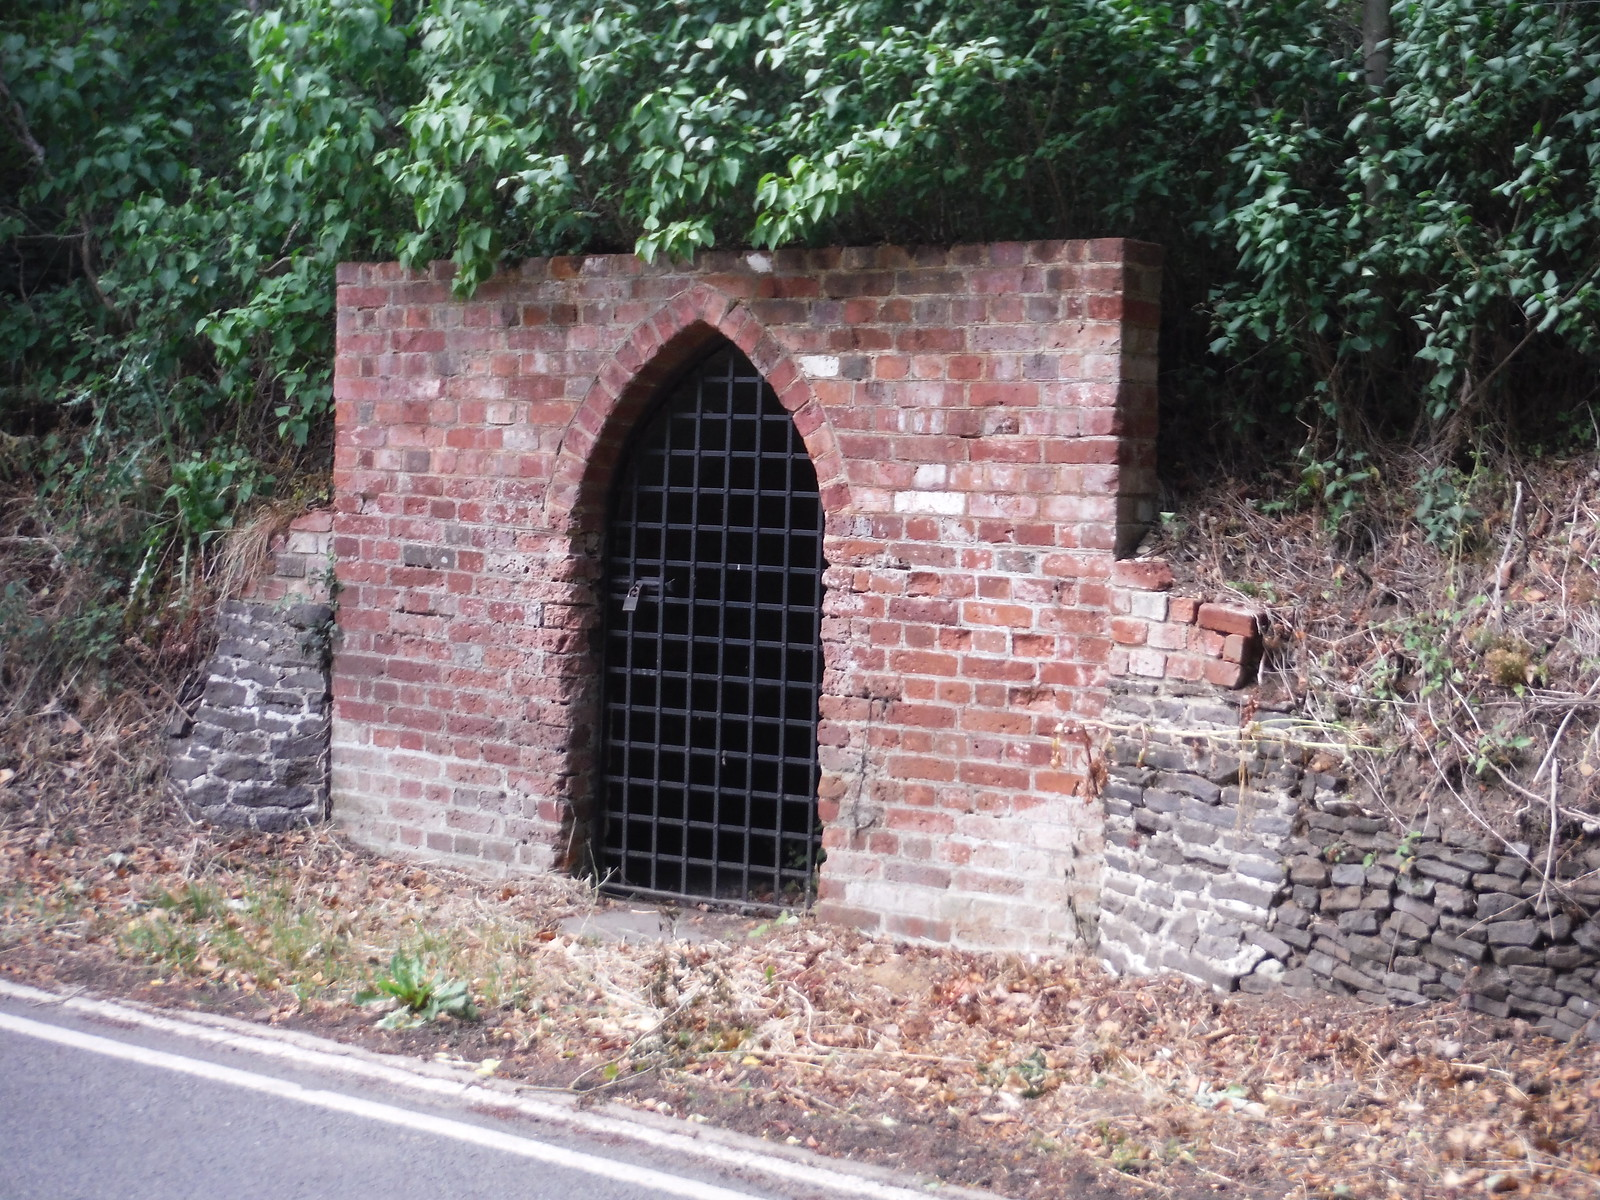 Mysterious Brick Storage Shelter, Tilford House SWC Walk 184 - Bentley to Farnham